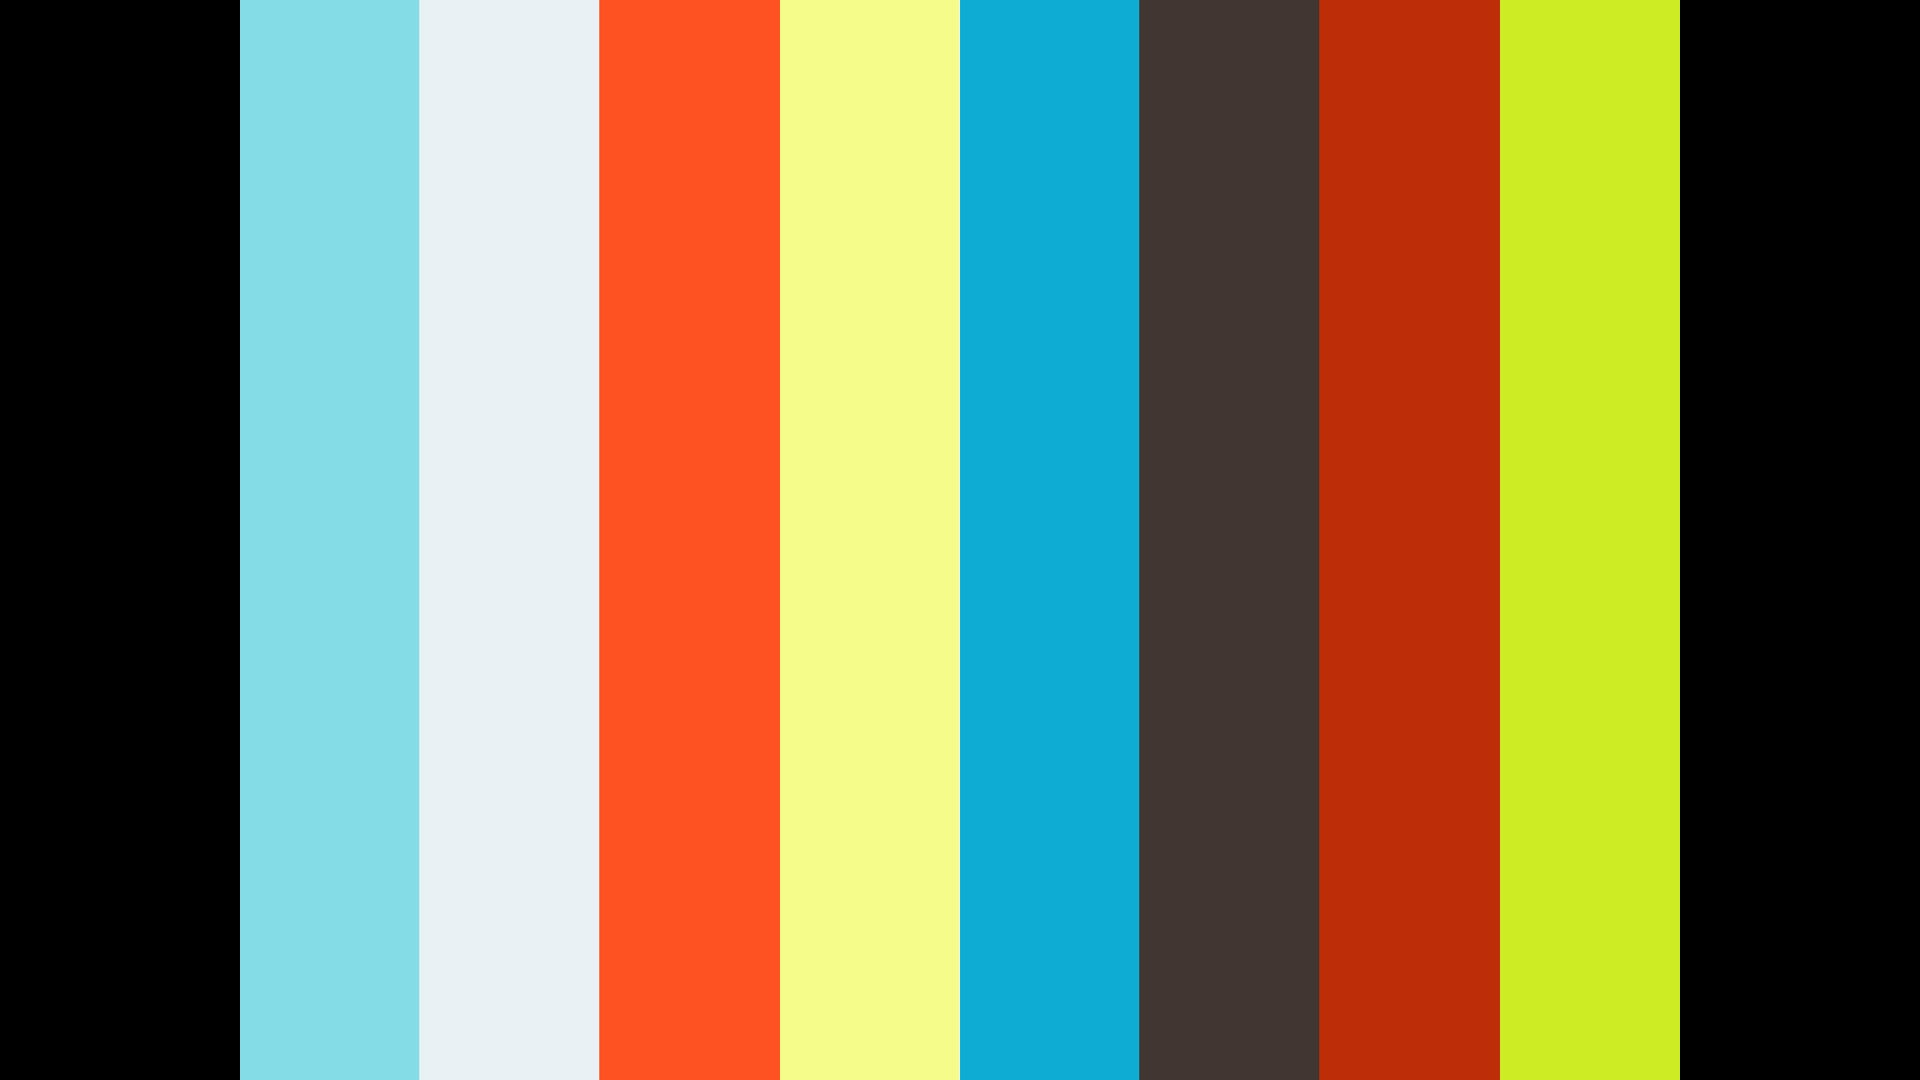 Sonu Nigam & Natalia Lesz af Preview of Song Fire in the Sky